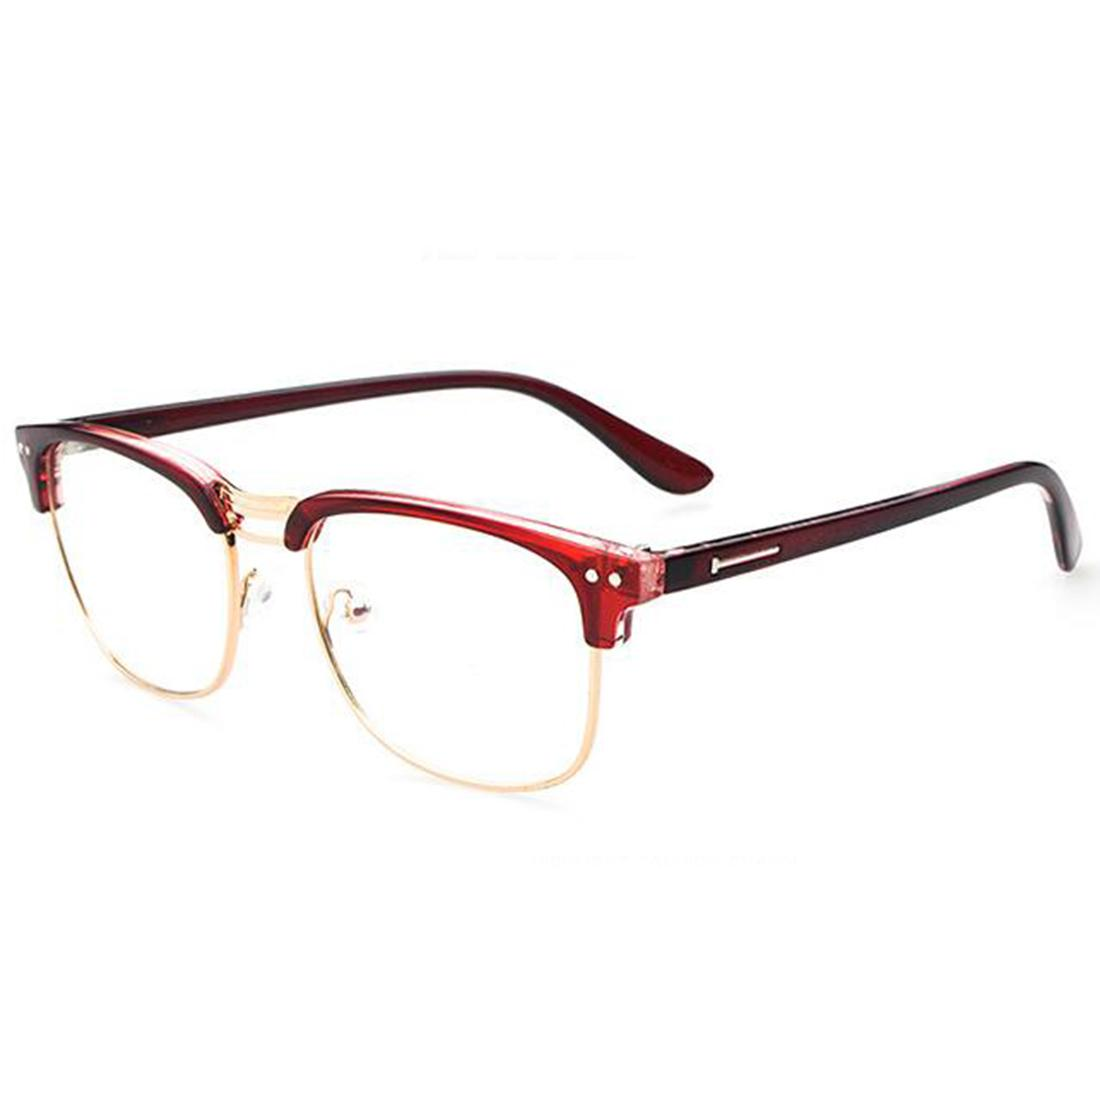 793addbf21 Wholesale- Fashion Metal Half Frame Glasses Frame Retro Women Men ...